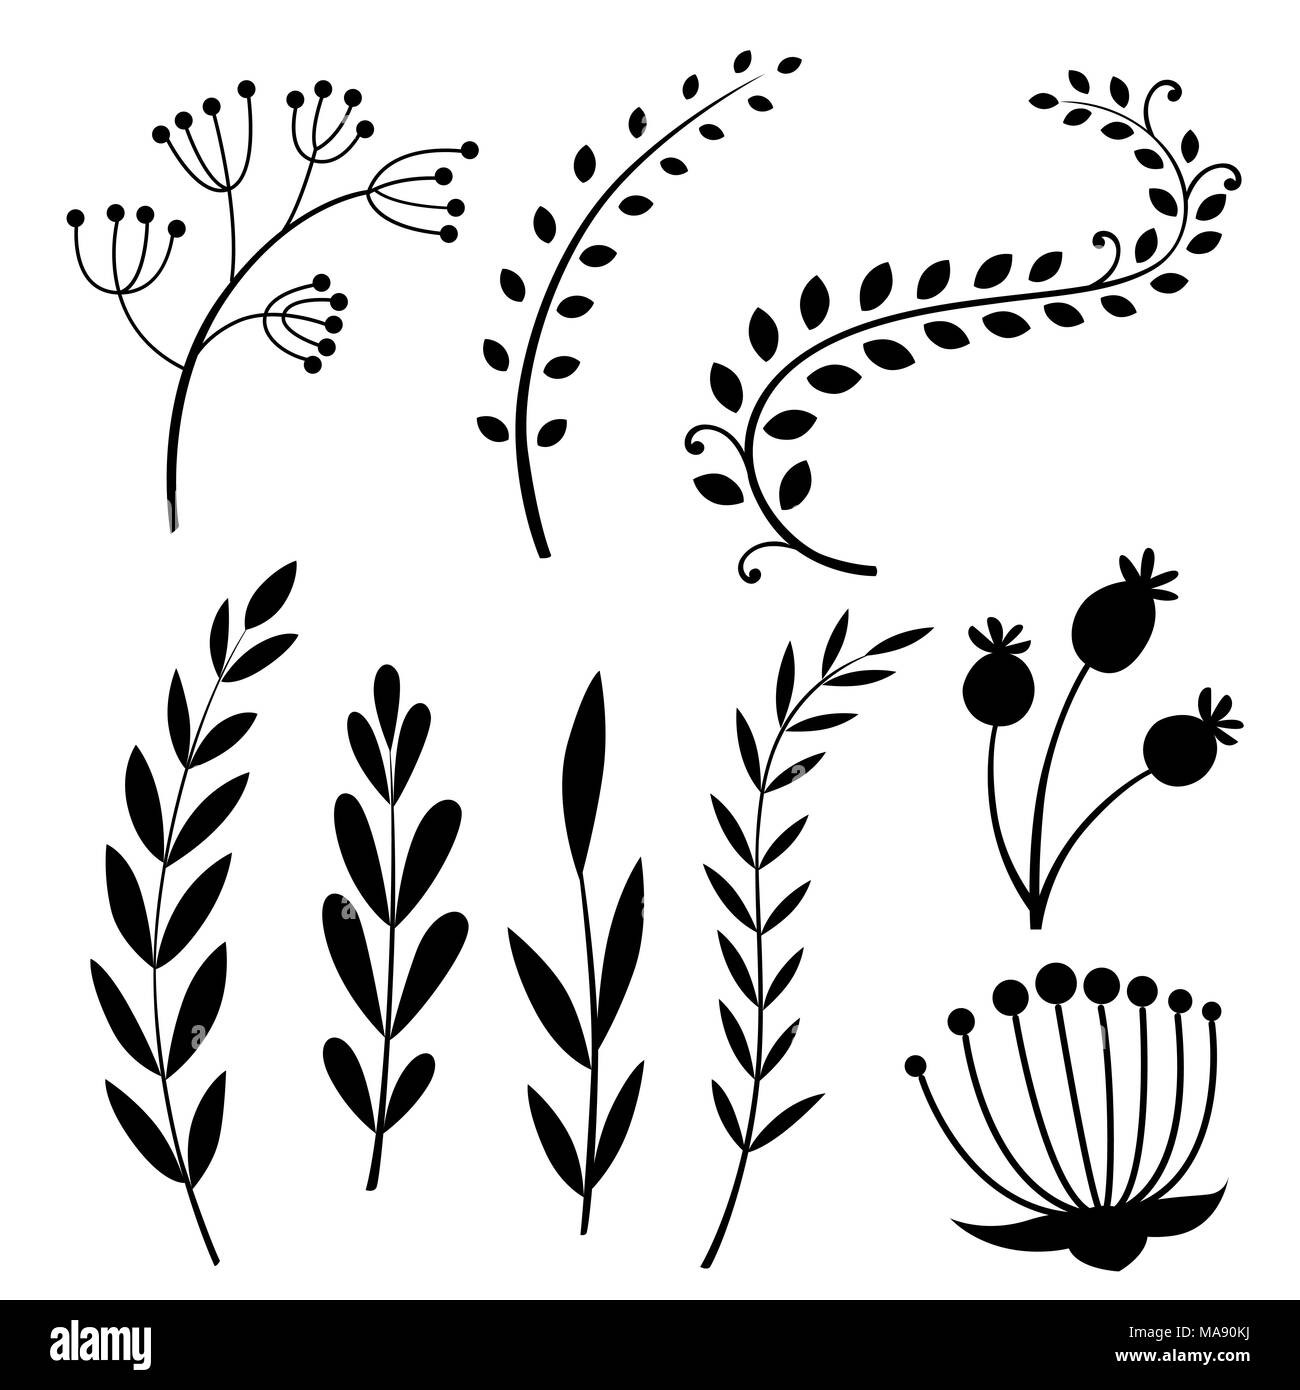 Set Of Black Flower Design Elements From My Big Floral: Black Silhouette. Set With Floral Elements And Leaves